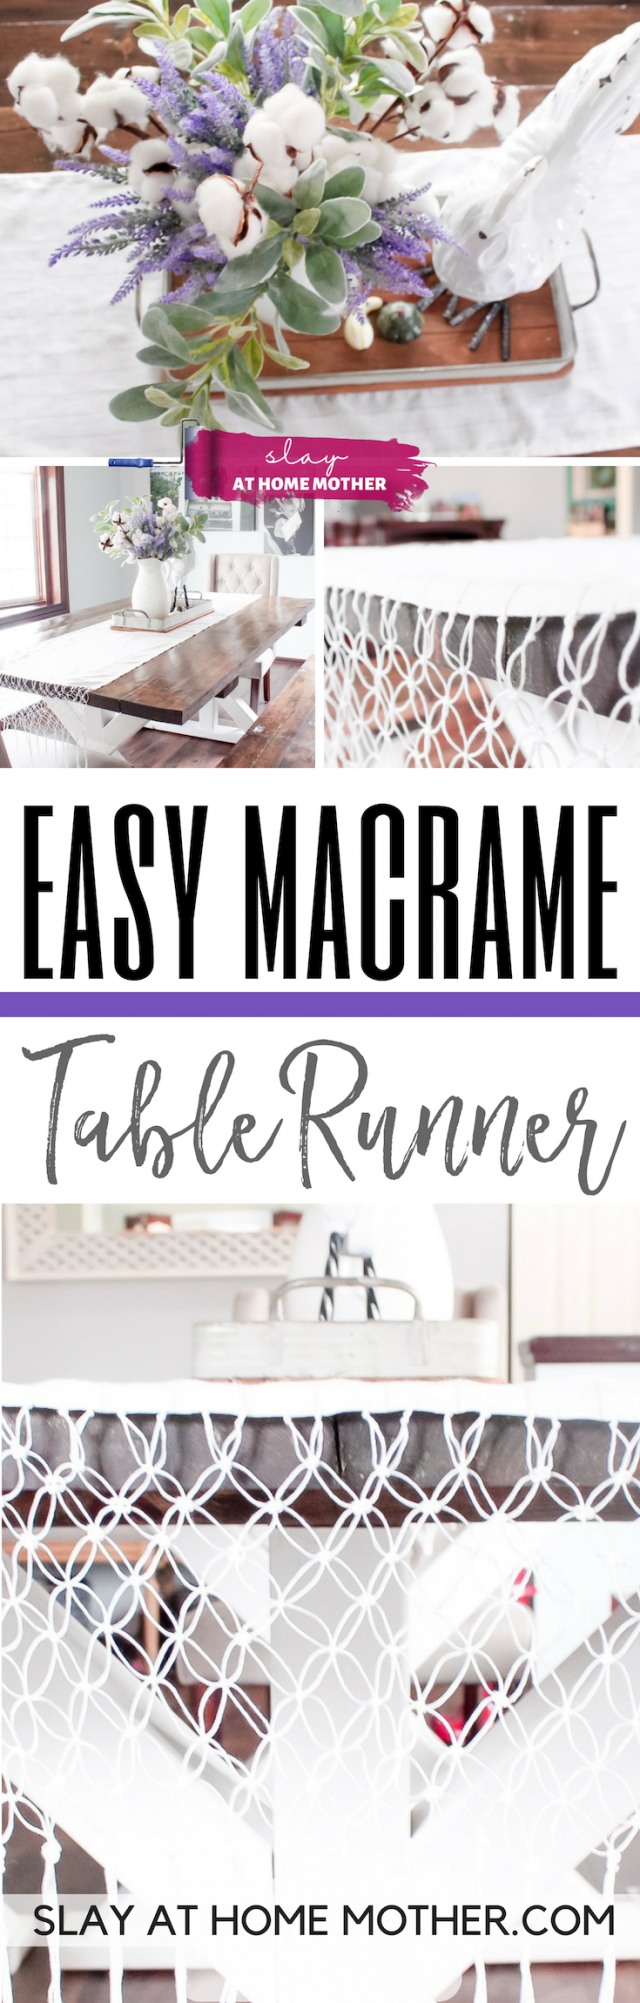 Easy Macrame Table Runner #macrame #tablerunner #slayathomemother #diy - SLAYathomemother.com